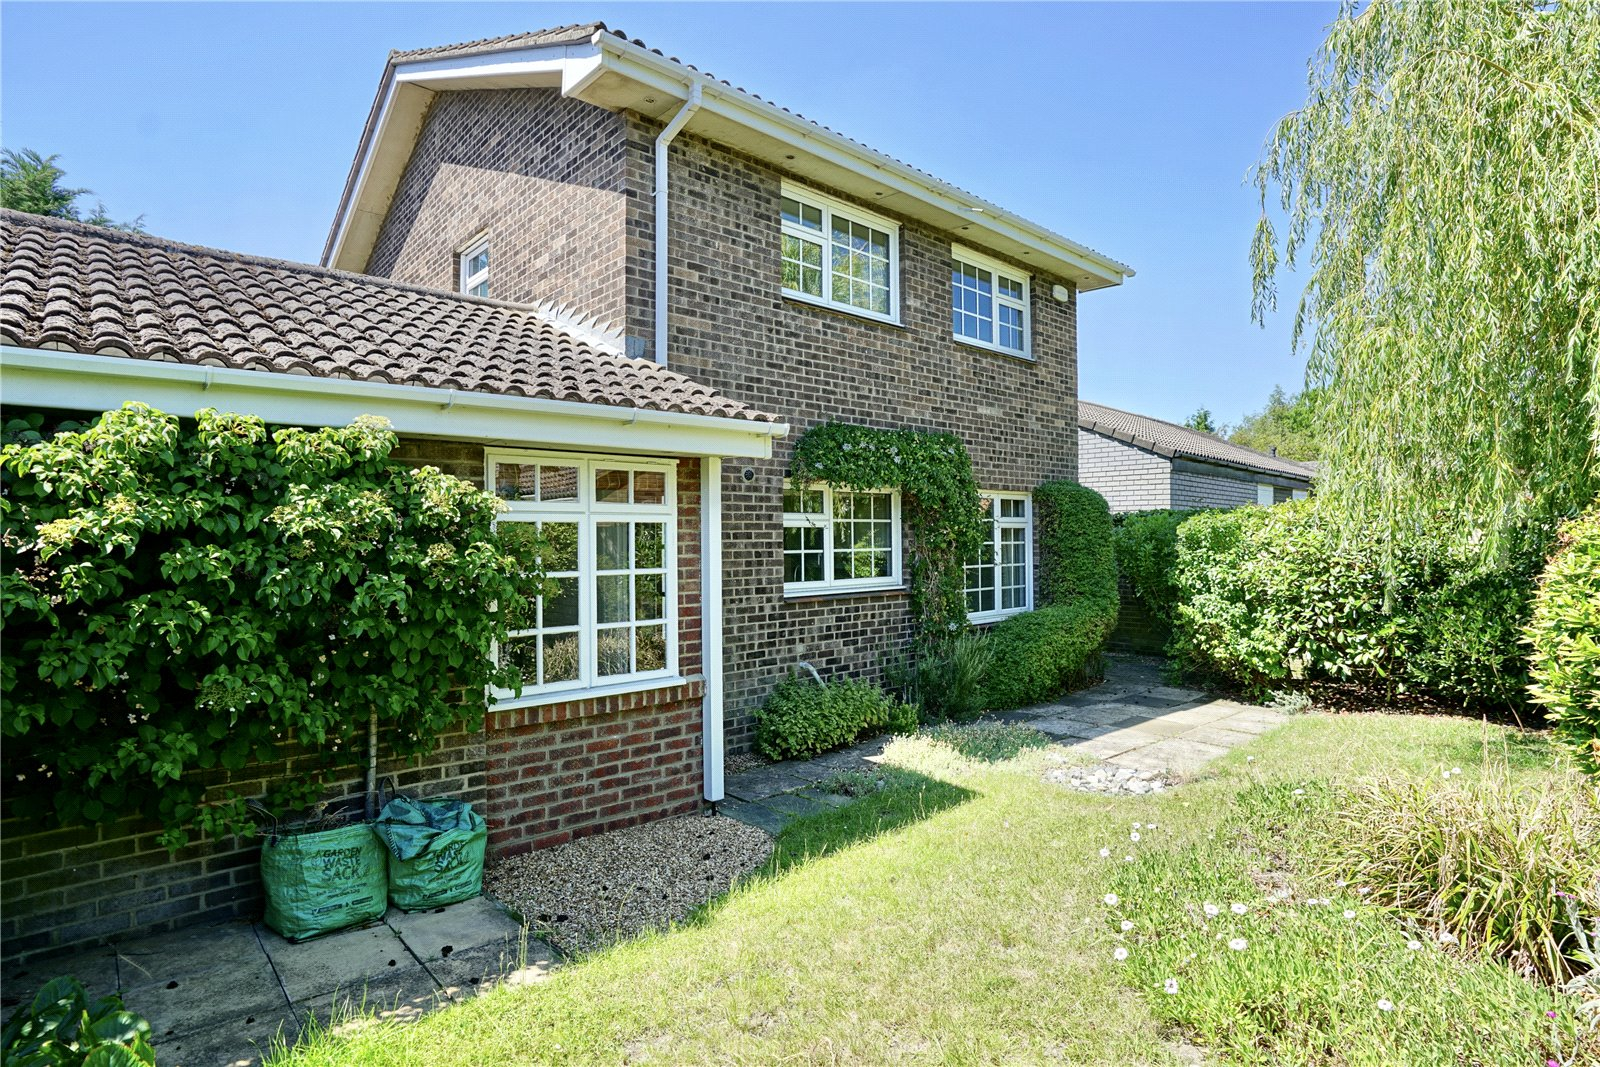 4 bed house for sale in All Hallows, Sandy  - Property Image 5